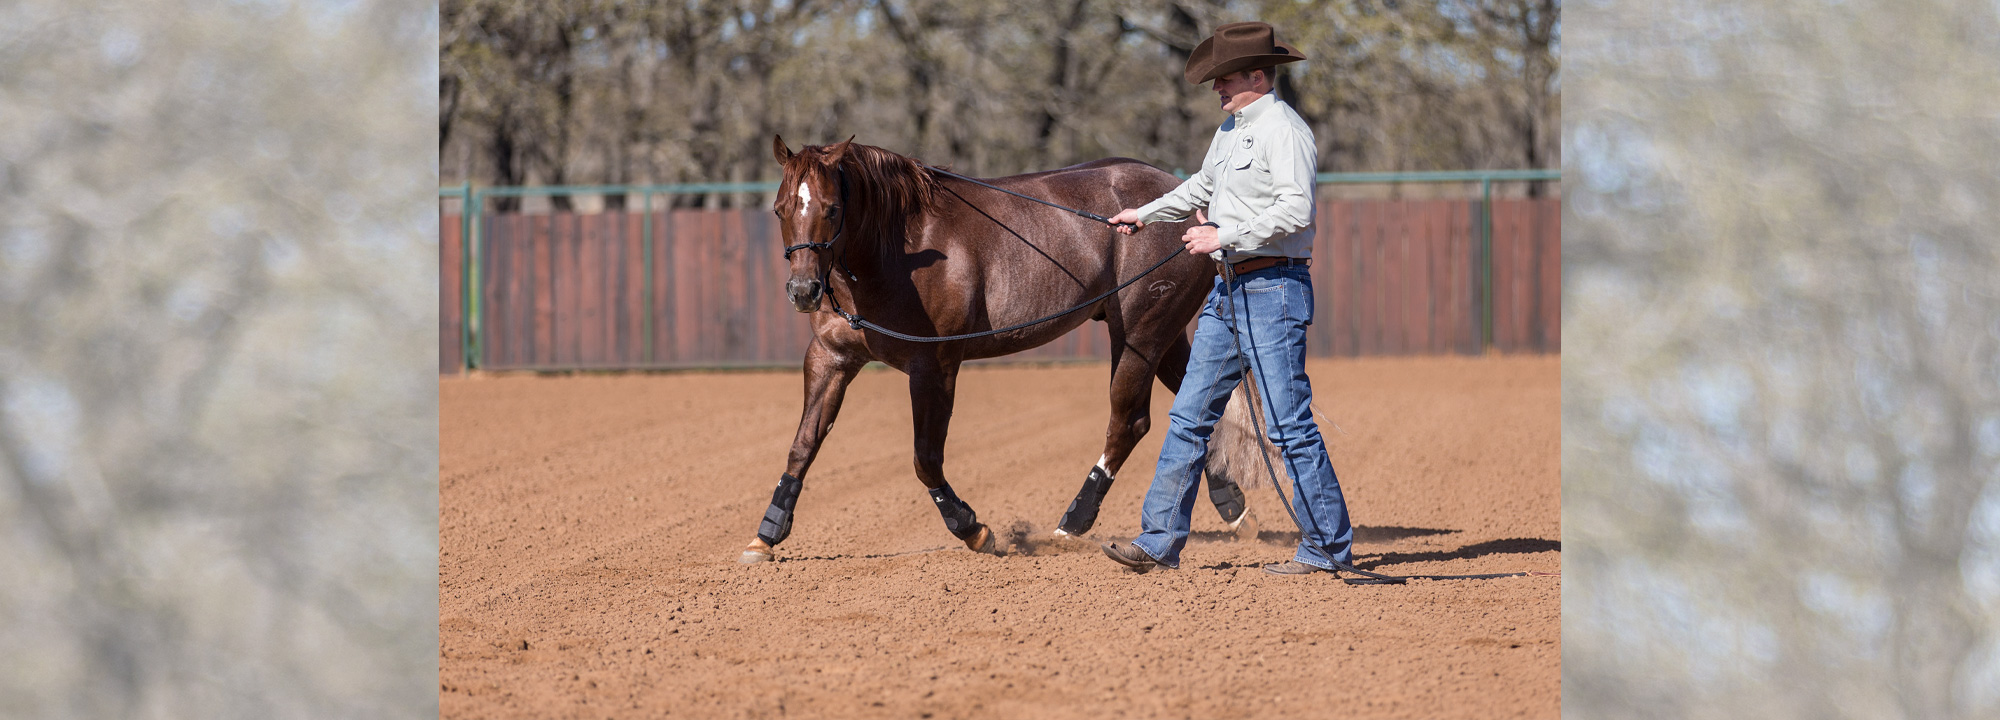 Horse Training Tip Groundwork And Riding Exercises Downunder